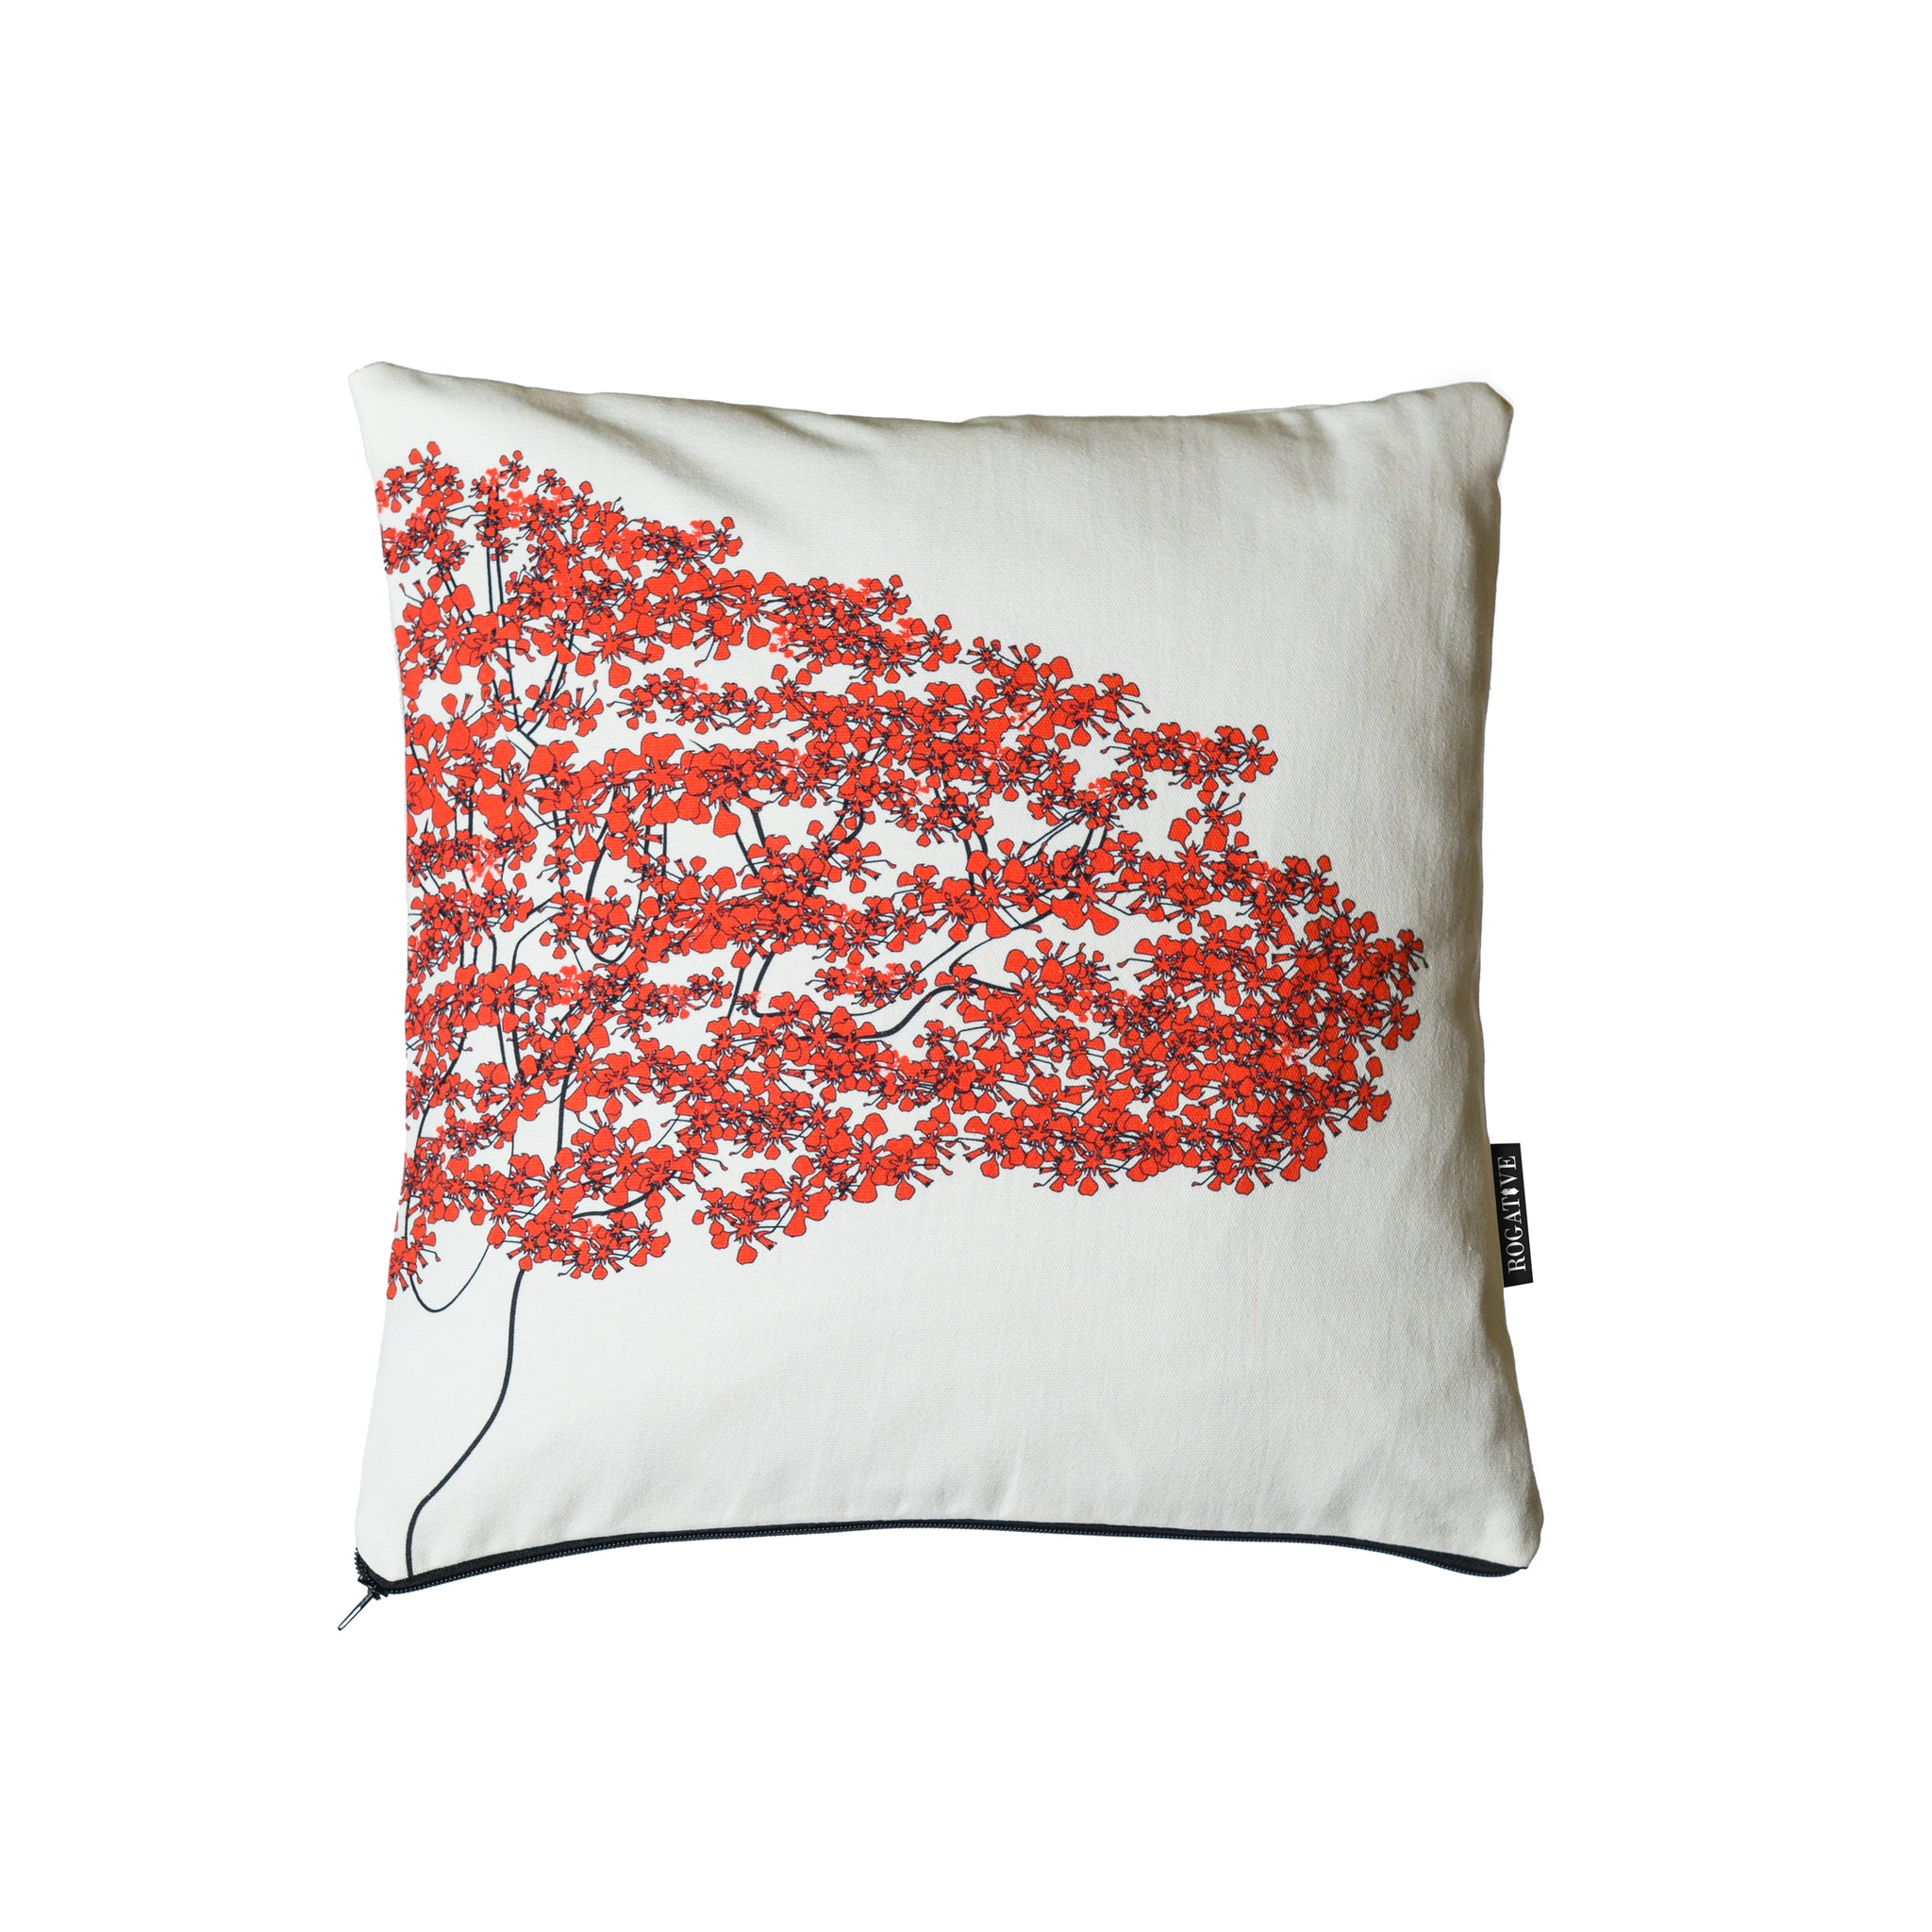 Flamboyán Decorative Pillow Cover